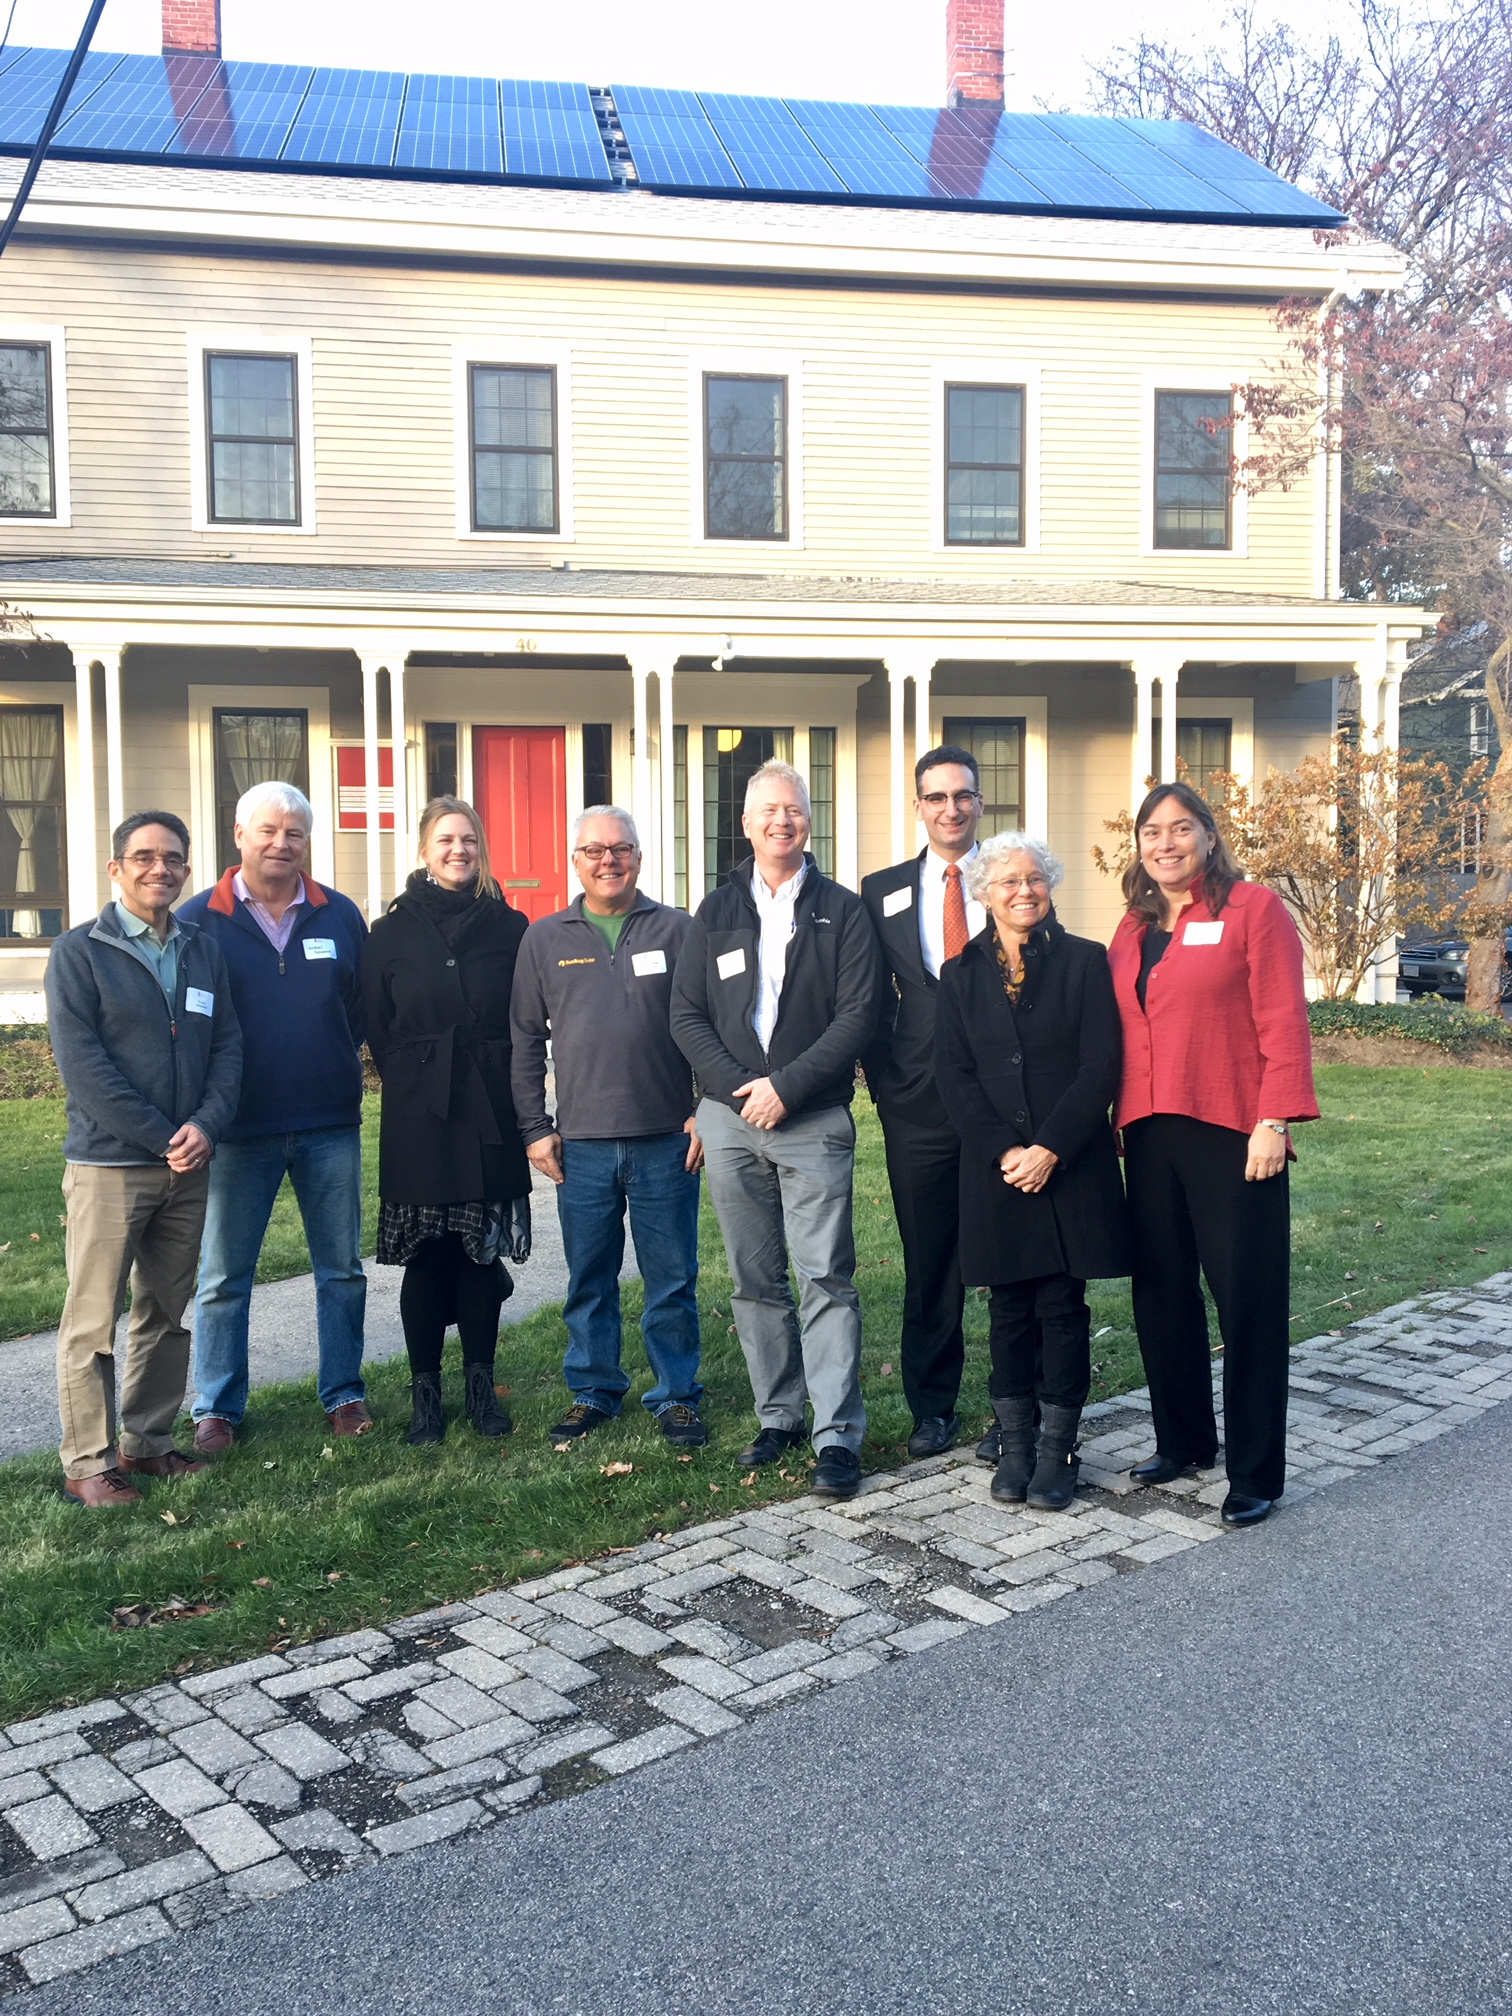 Tommy Vitolo with Brookline Community Foundation and solar panels